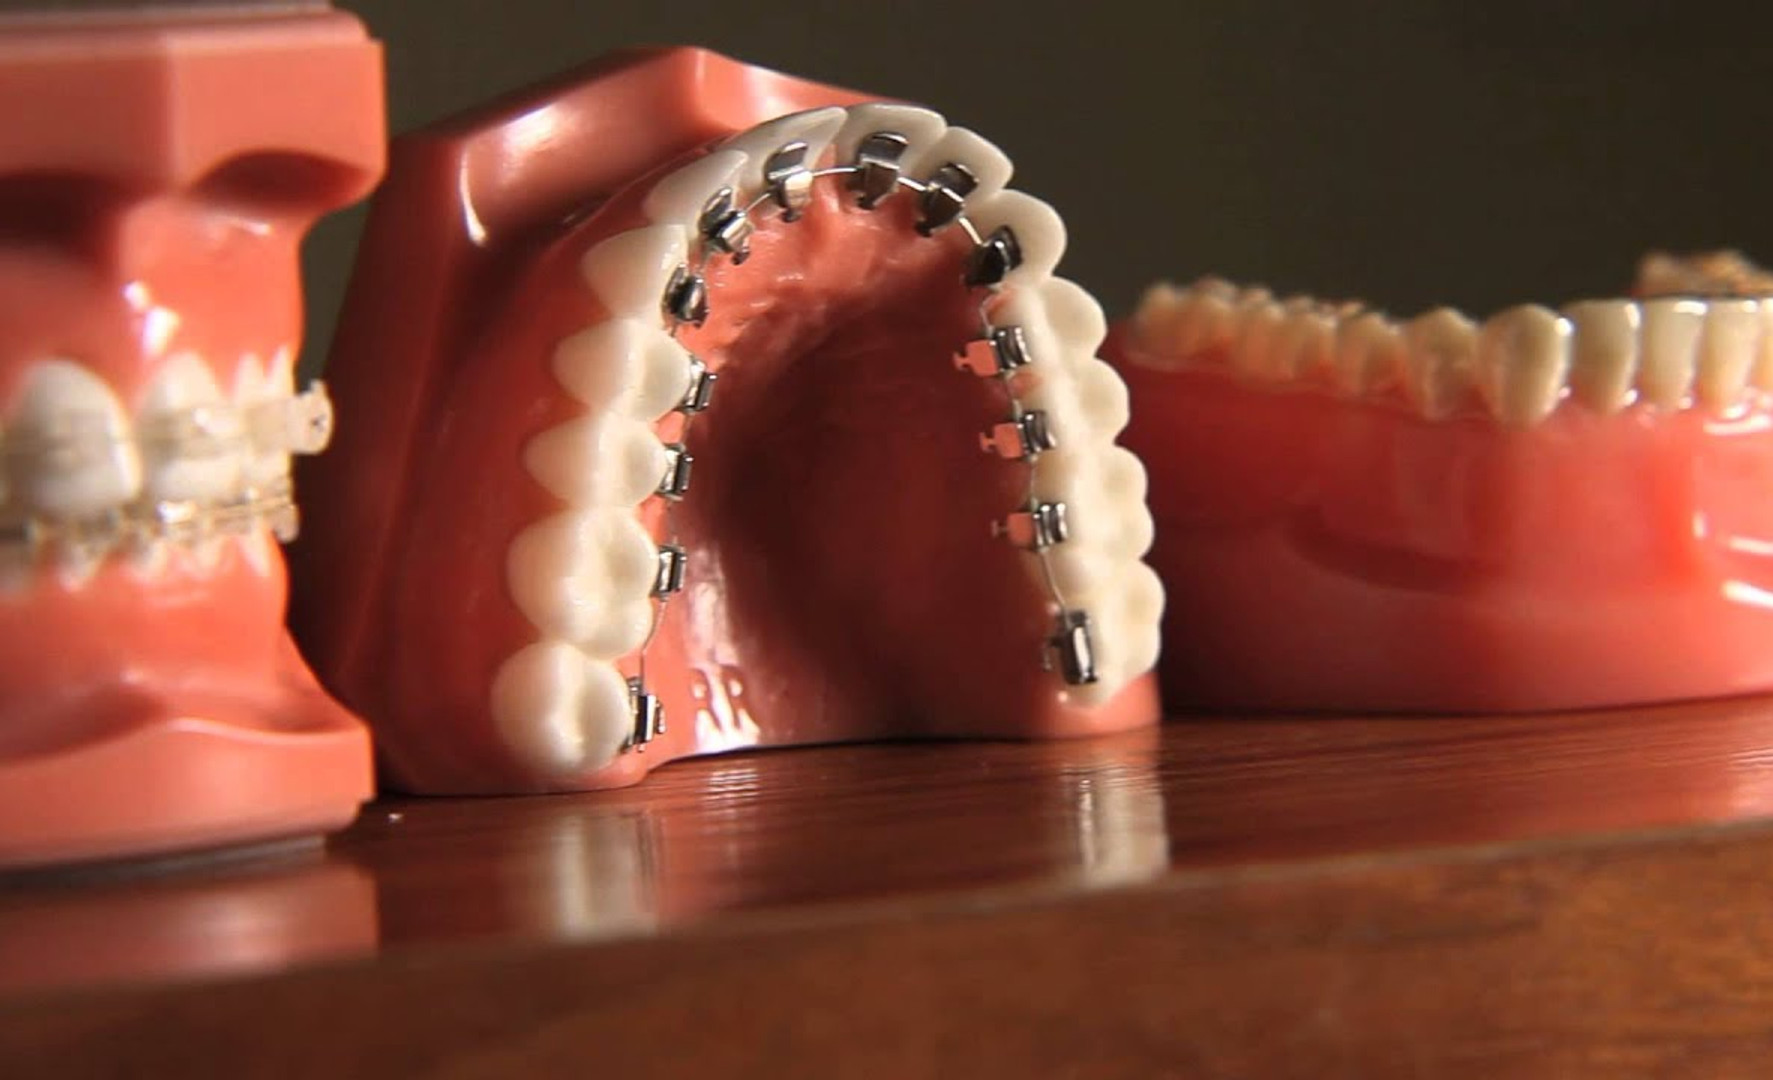 AAO presents: Braces Are Far More Attractive Than Crooked Teeth